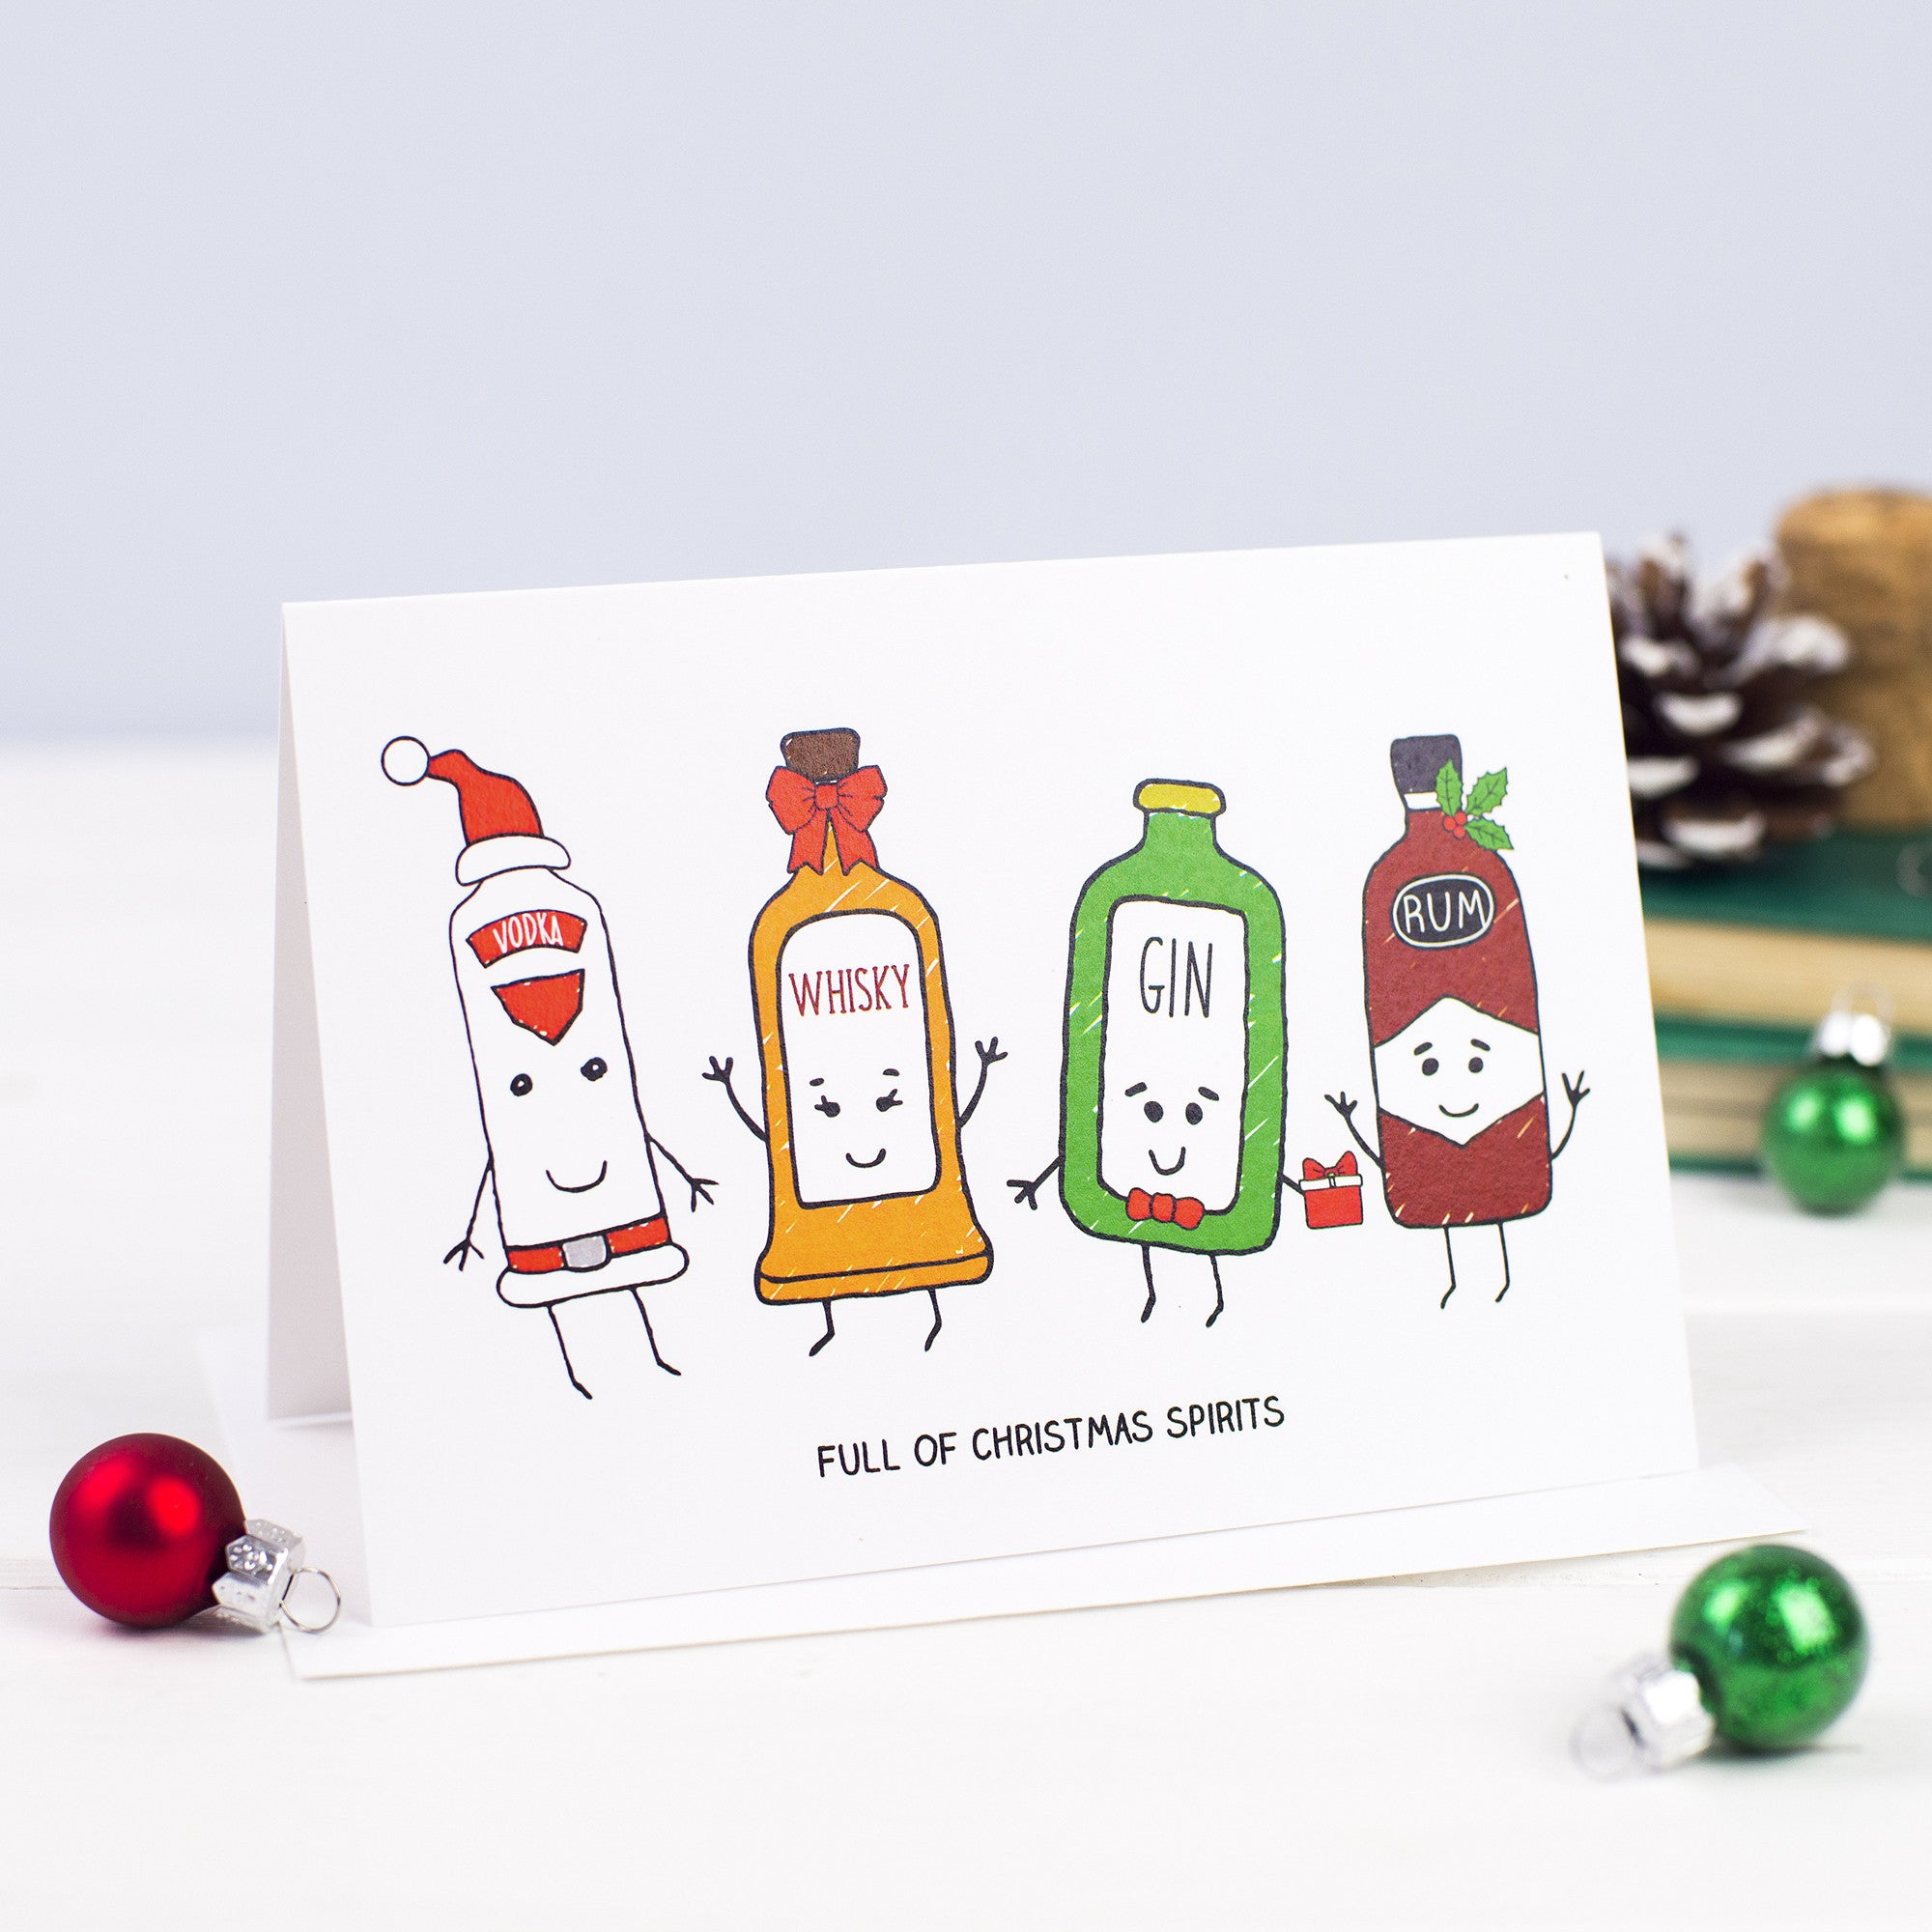 'Christmas Spirits' Christmas Card